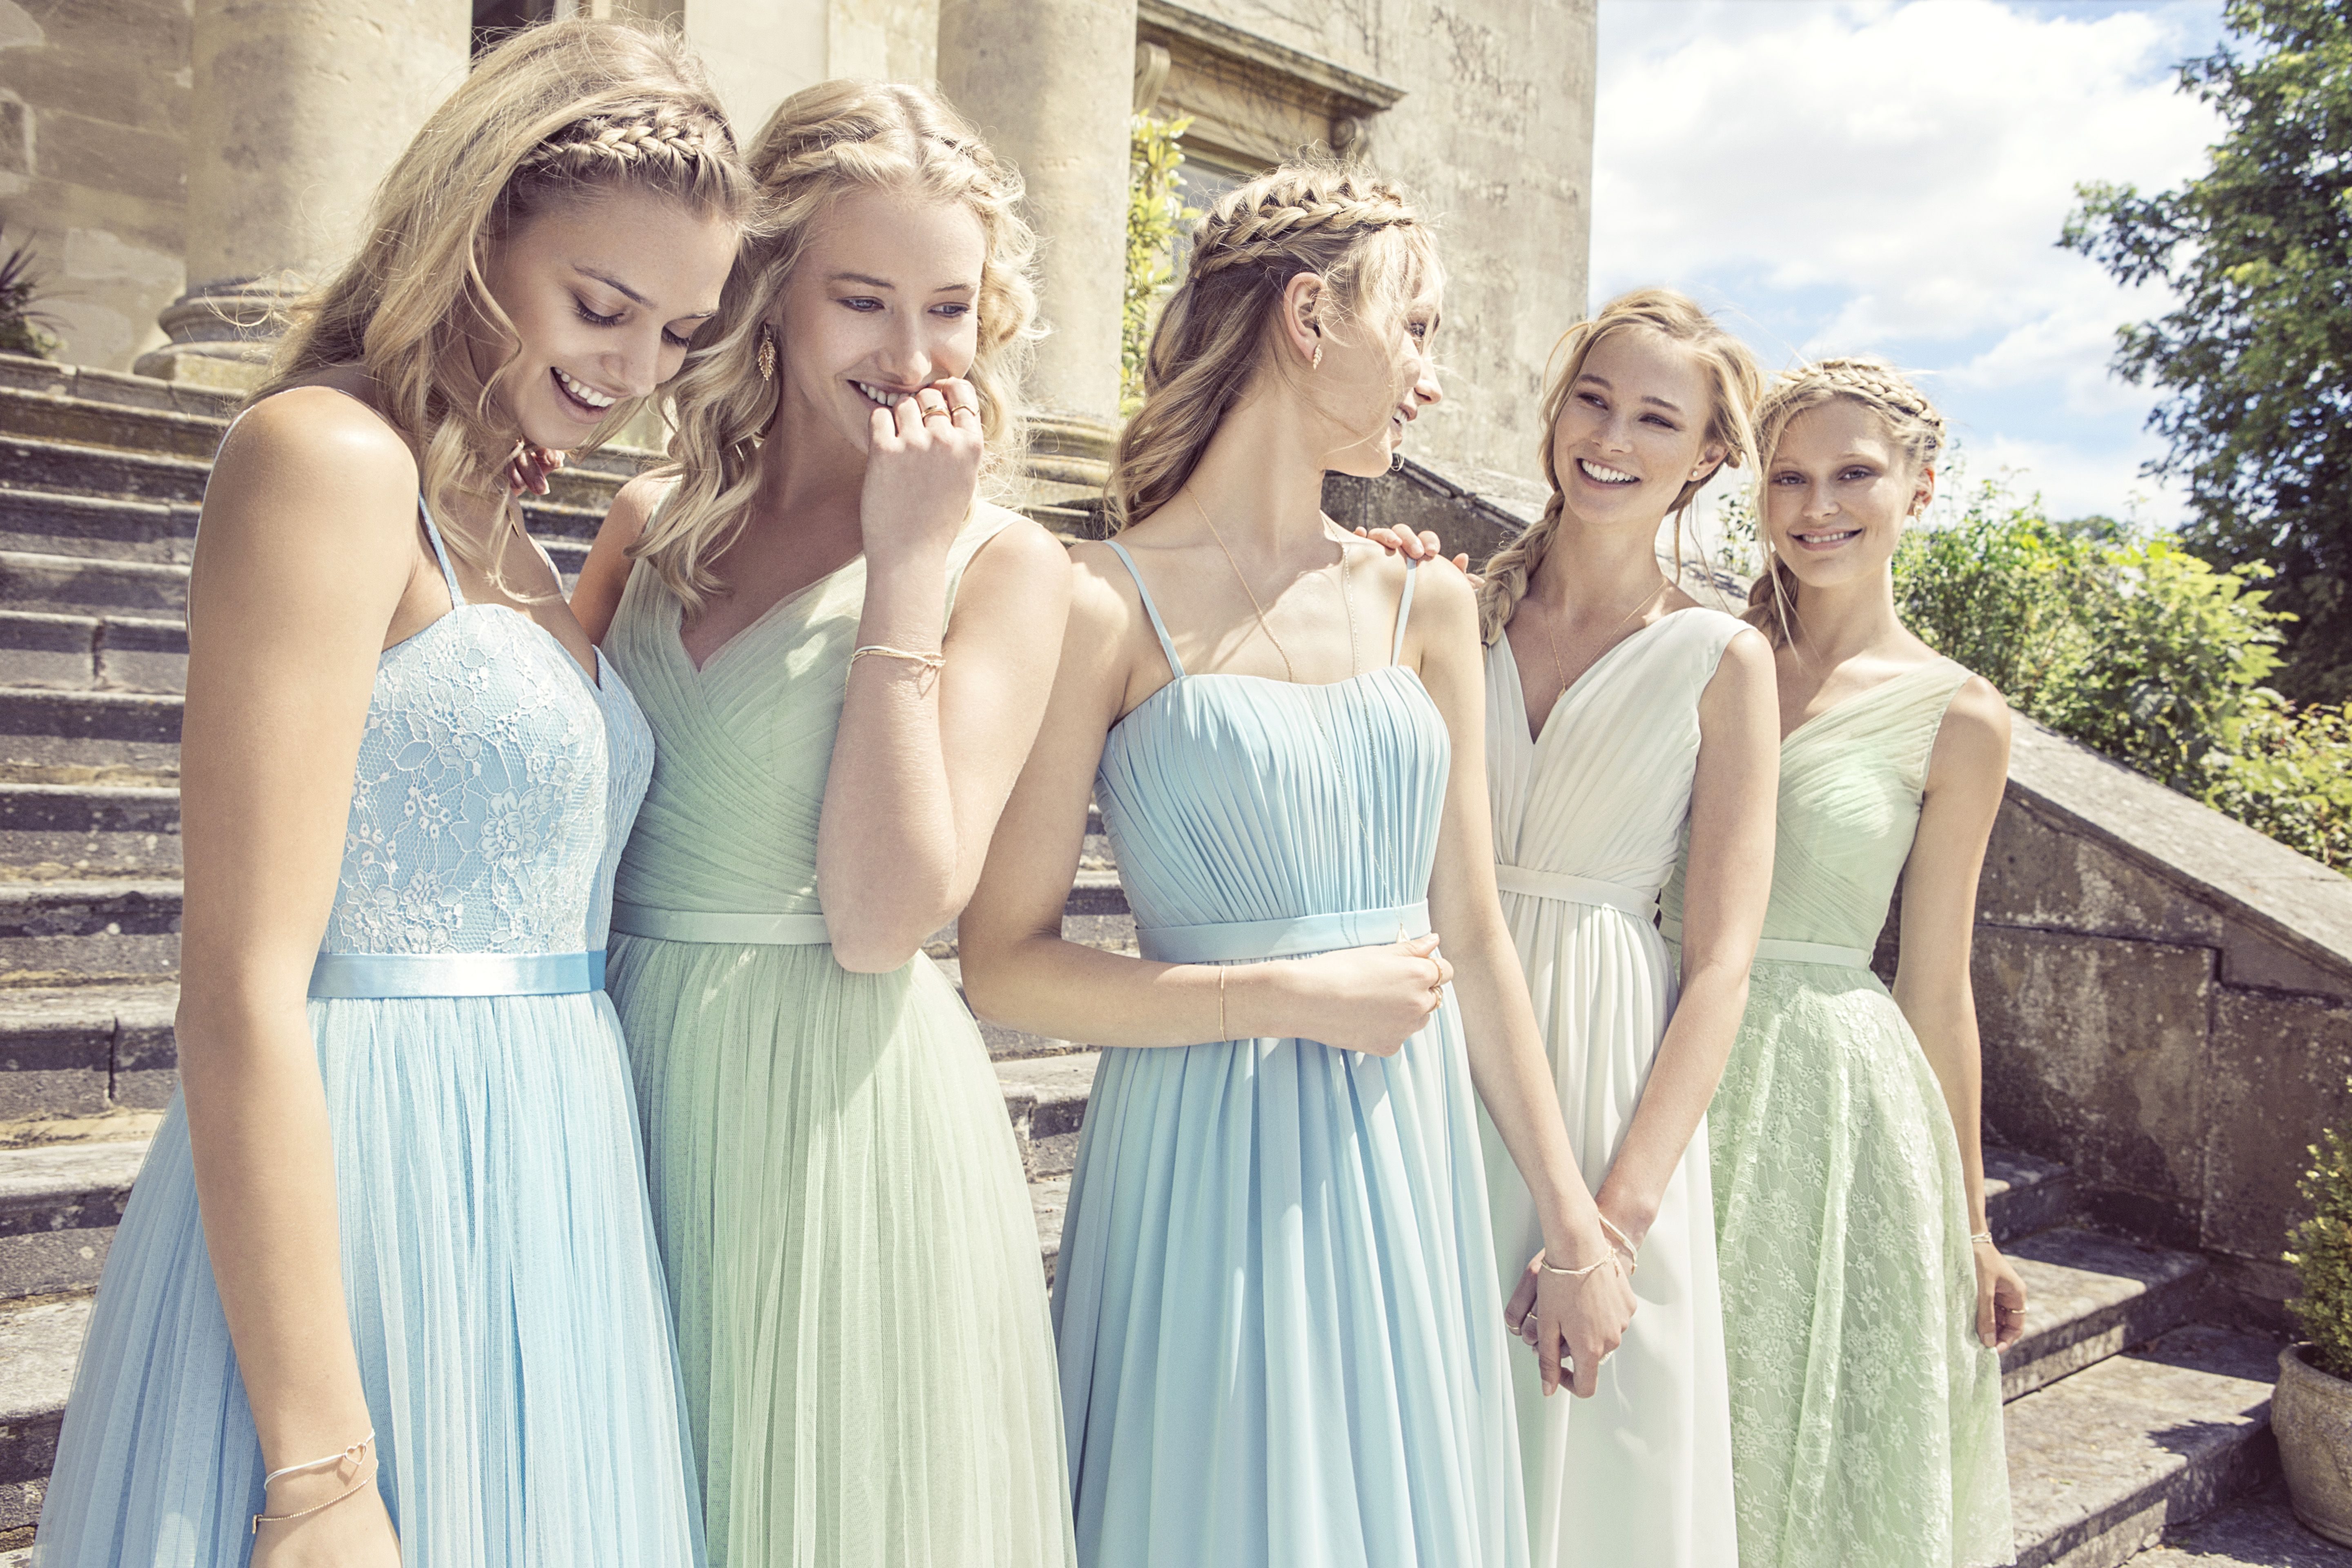 Kelsey rose 2015 kelseyrose styles left to right aqua shade dresses from kelsey rose 2015 ombrellifo Images